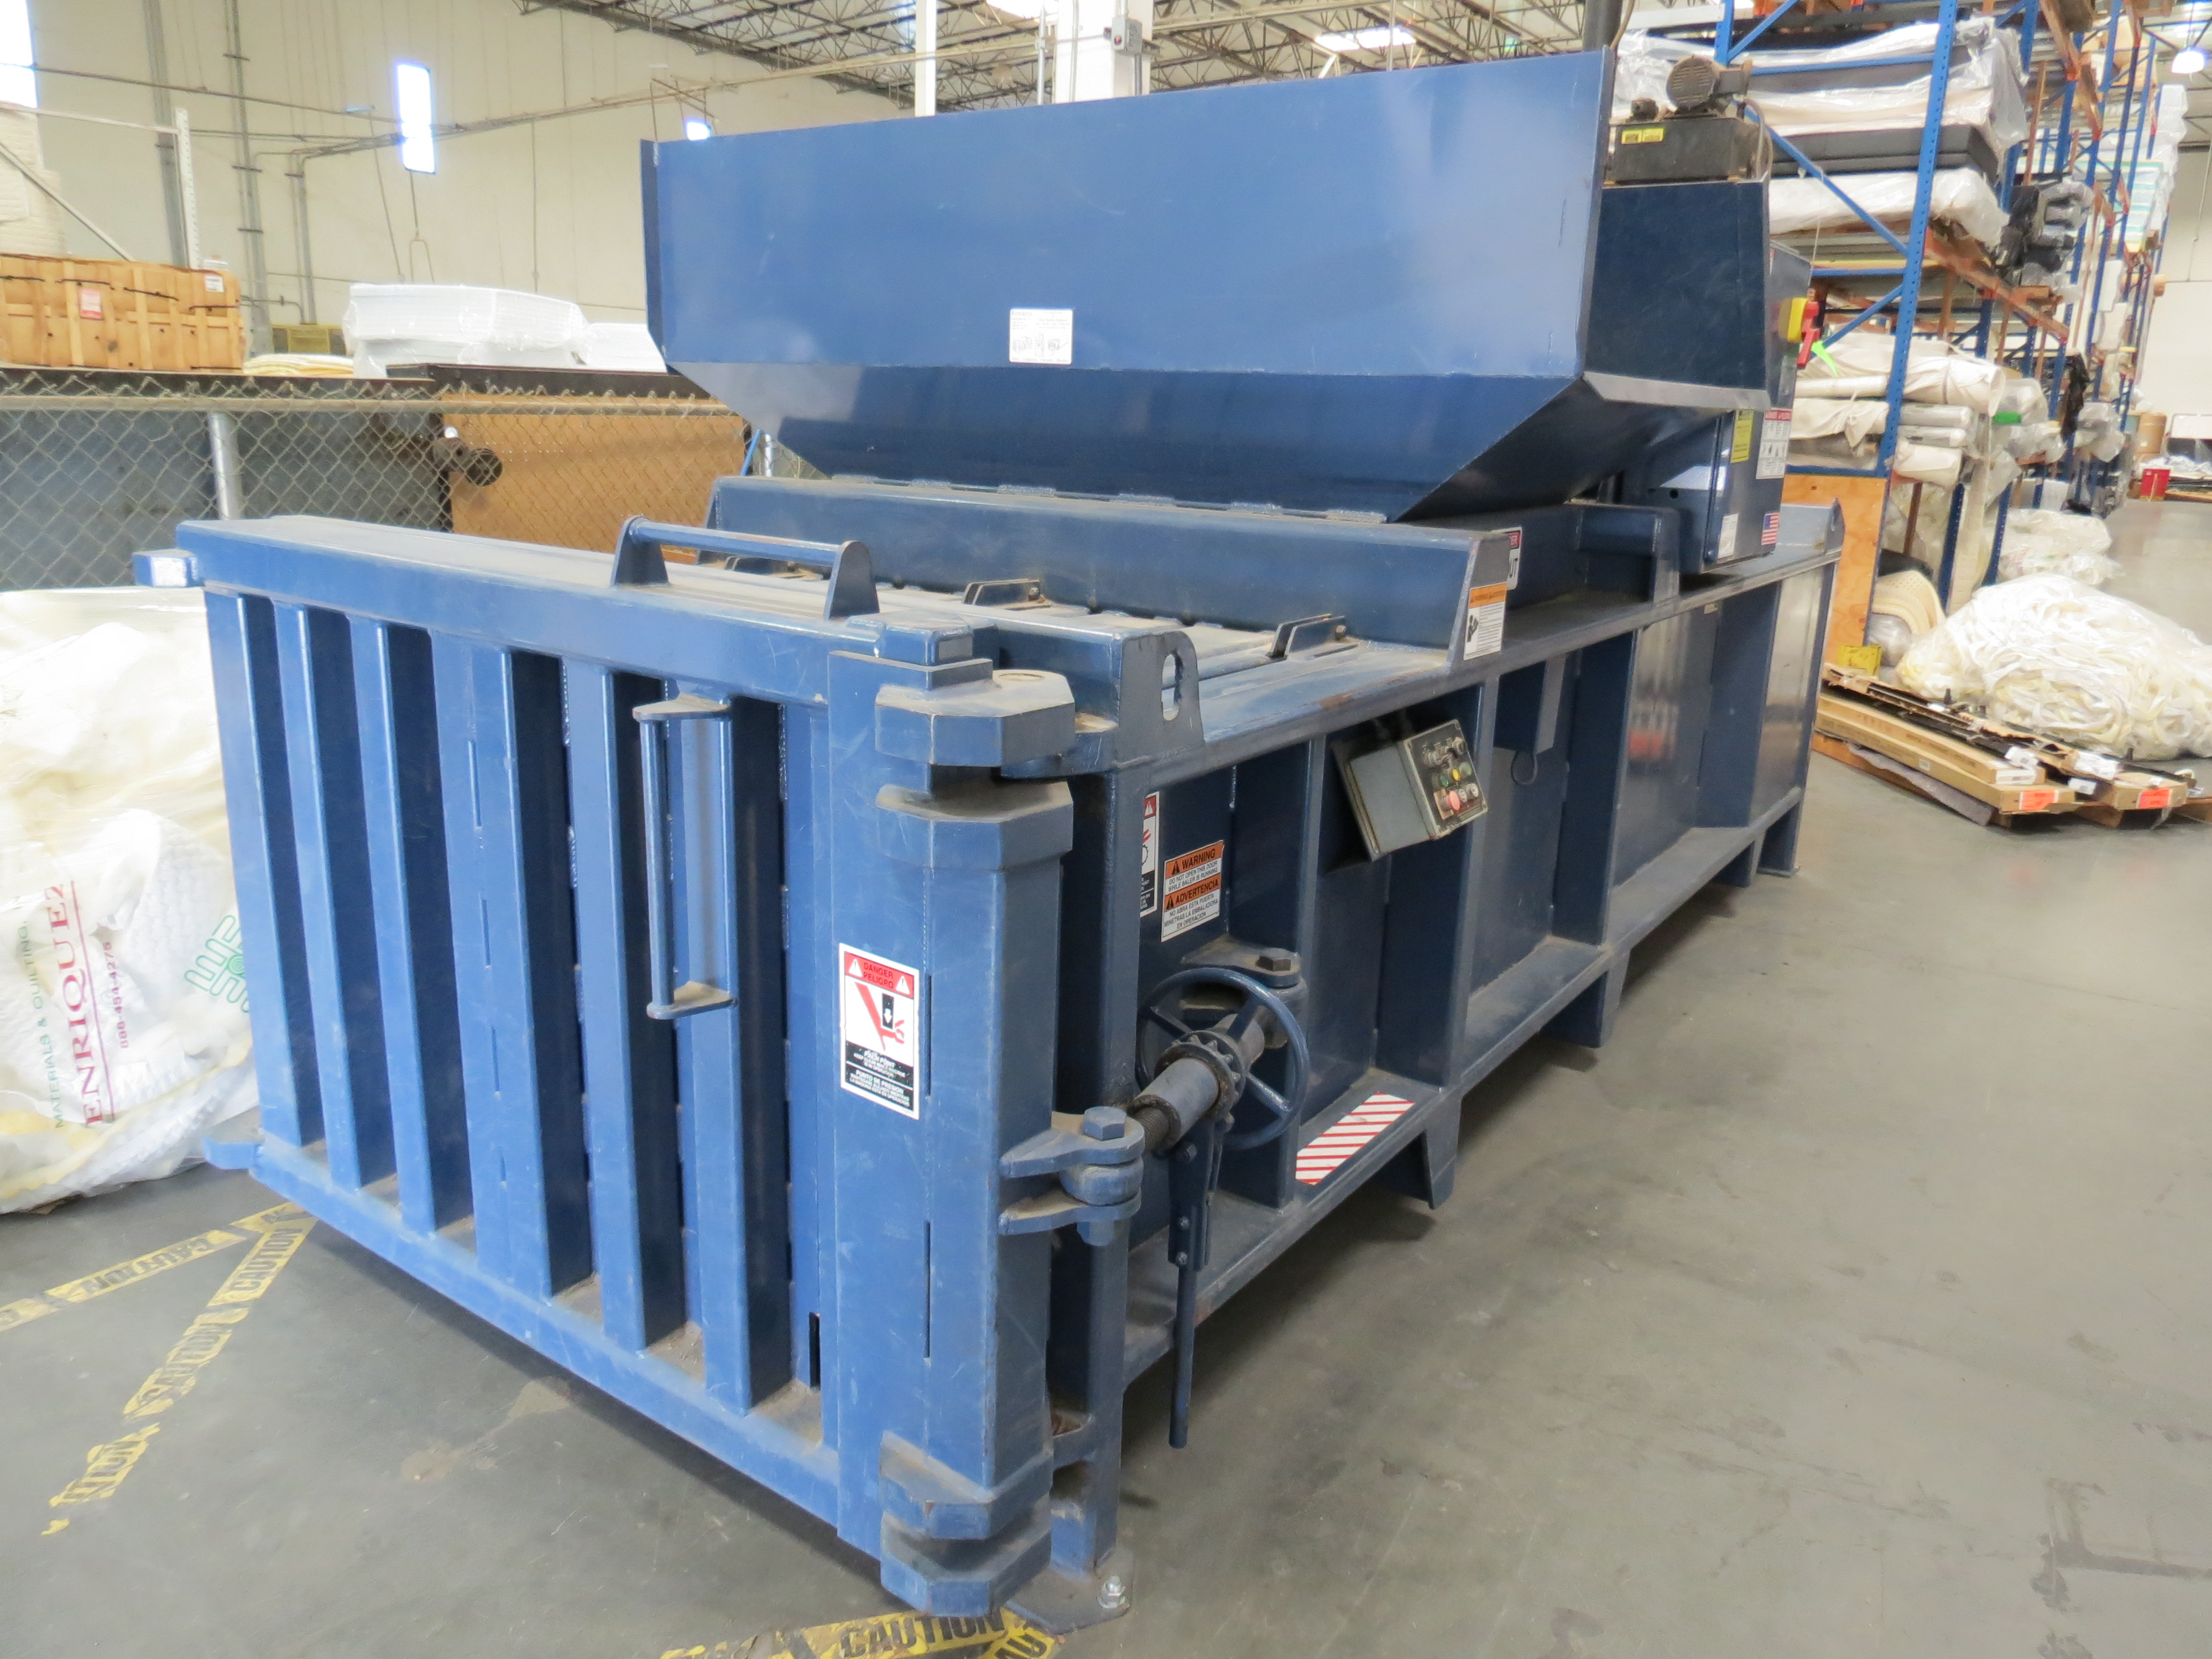 Excel EX602 Horizontal Baler 20HP, SN: EX2021 (Will Be Sold Subject to Confirmation) - Image 3 of 3